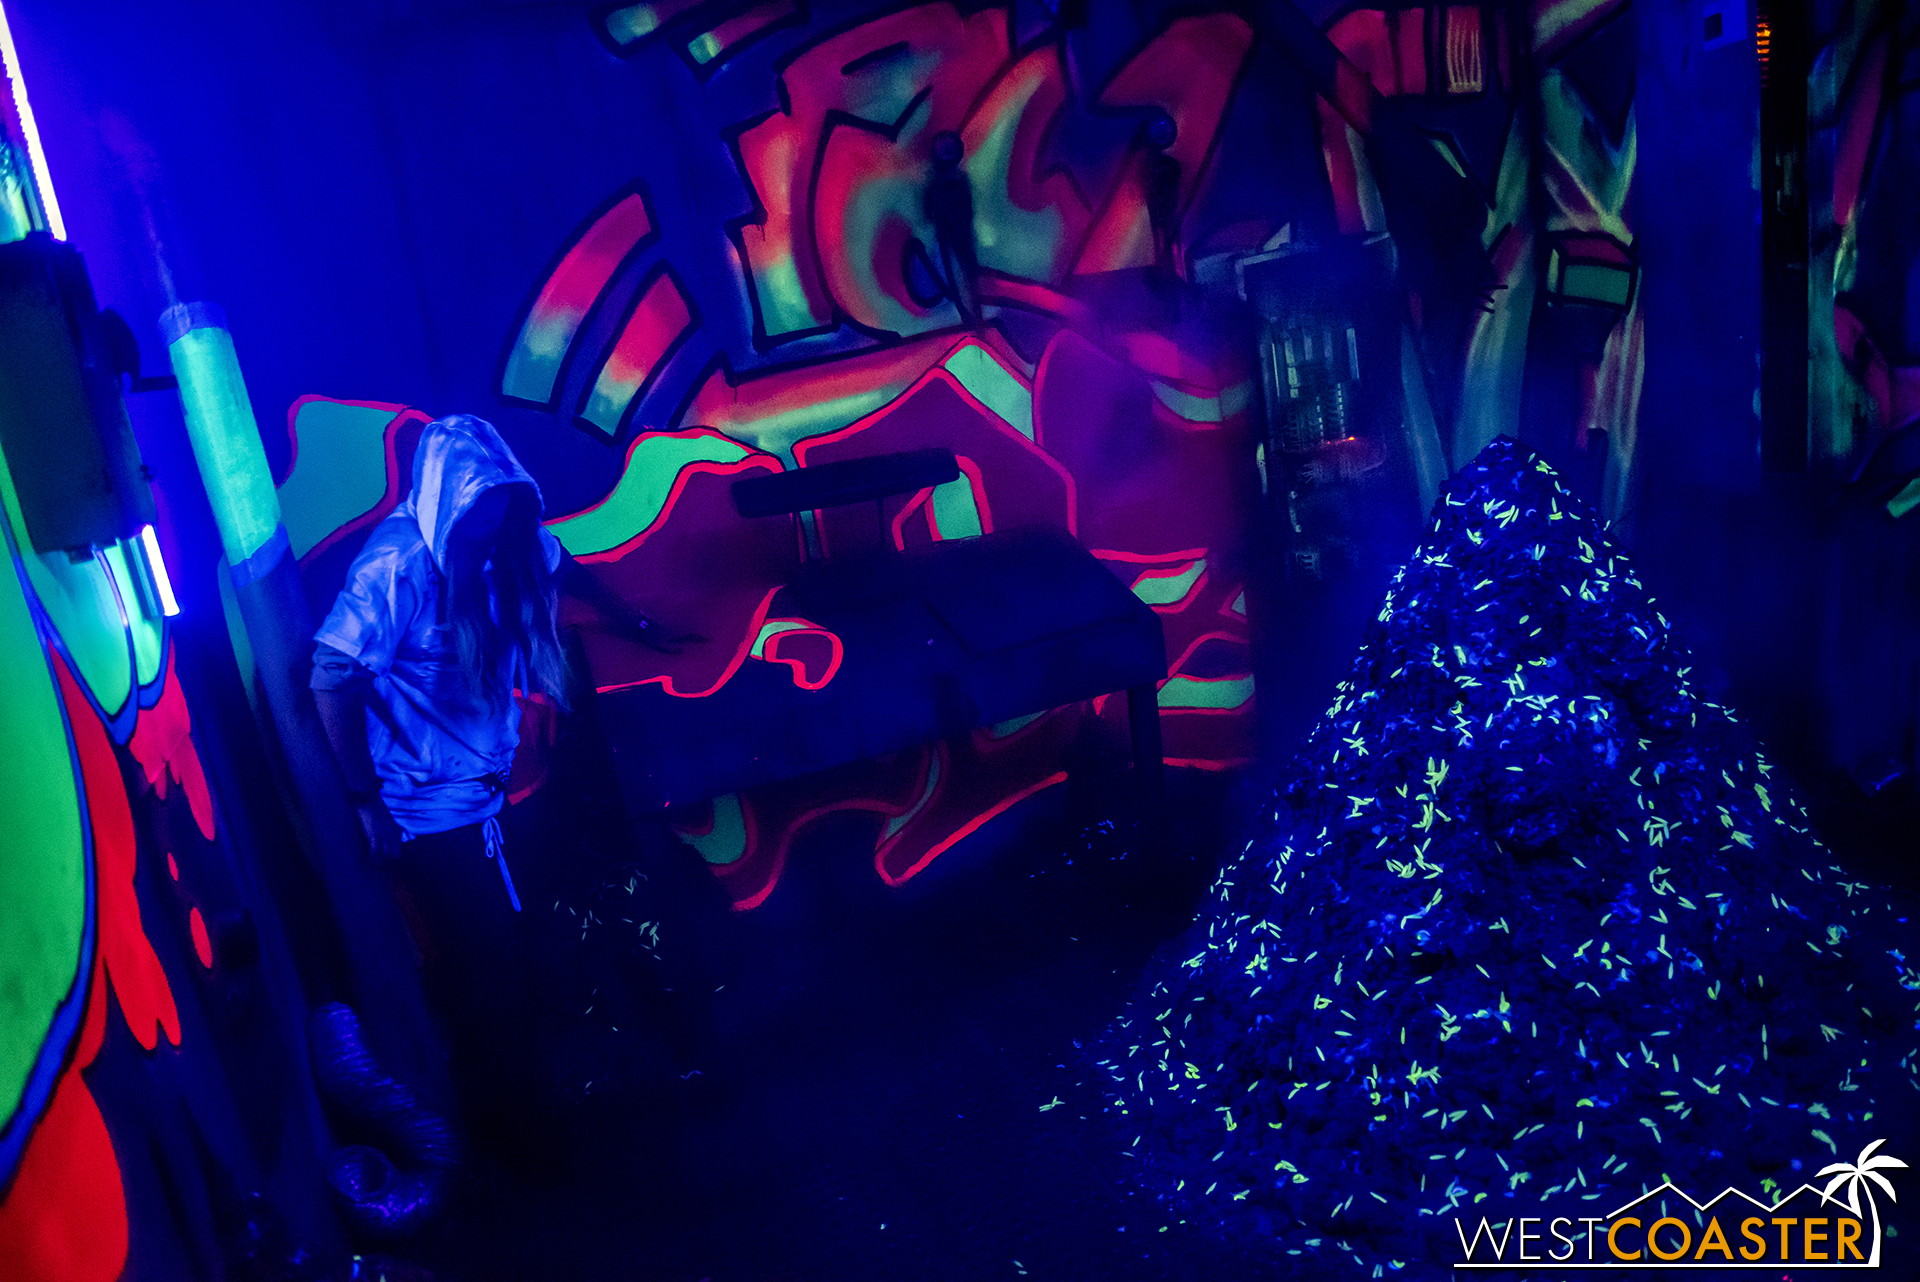 Sewer of Souls is a 3D maze, and with the provided glasses, the colors in many of the rooms really pop.